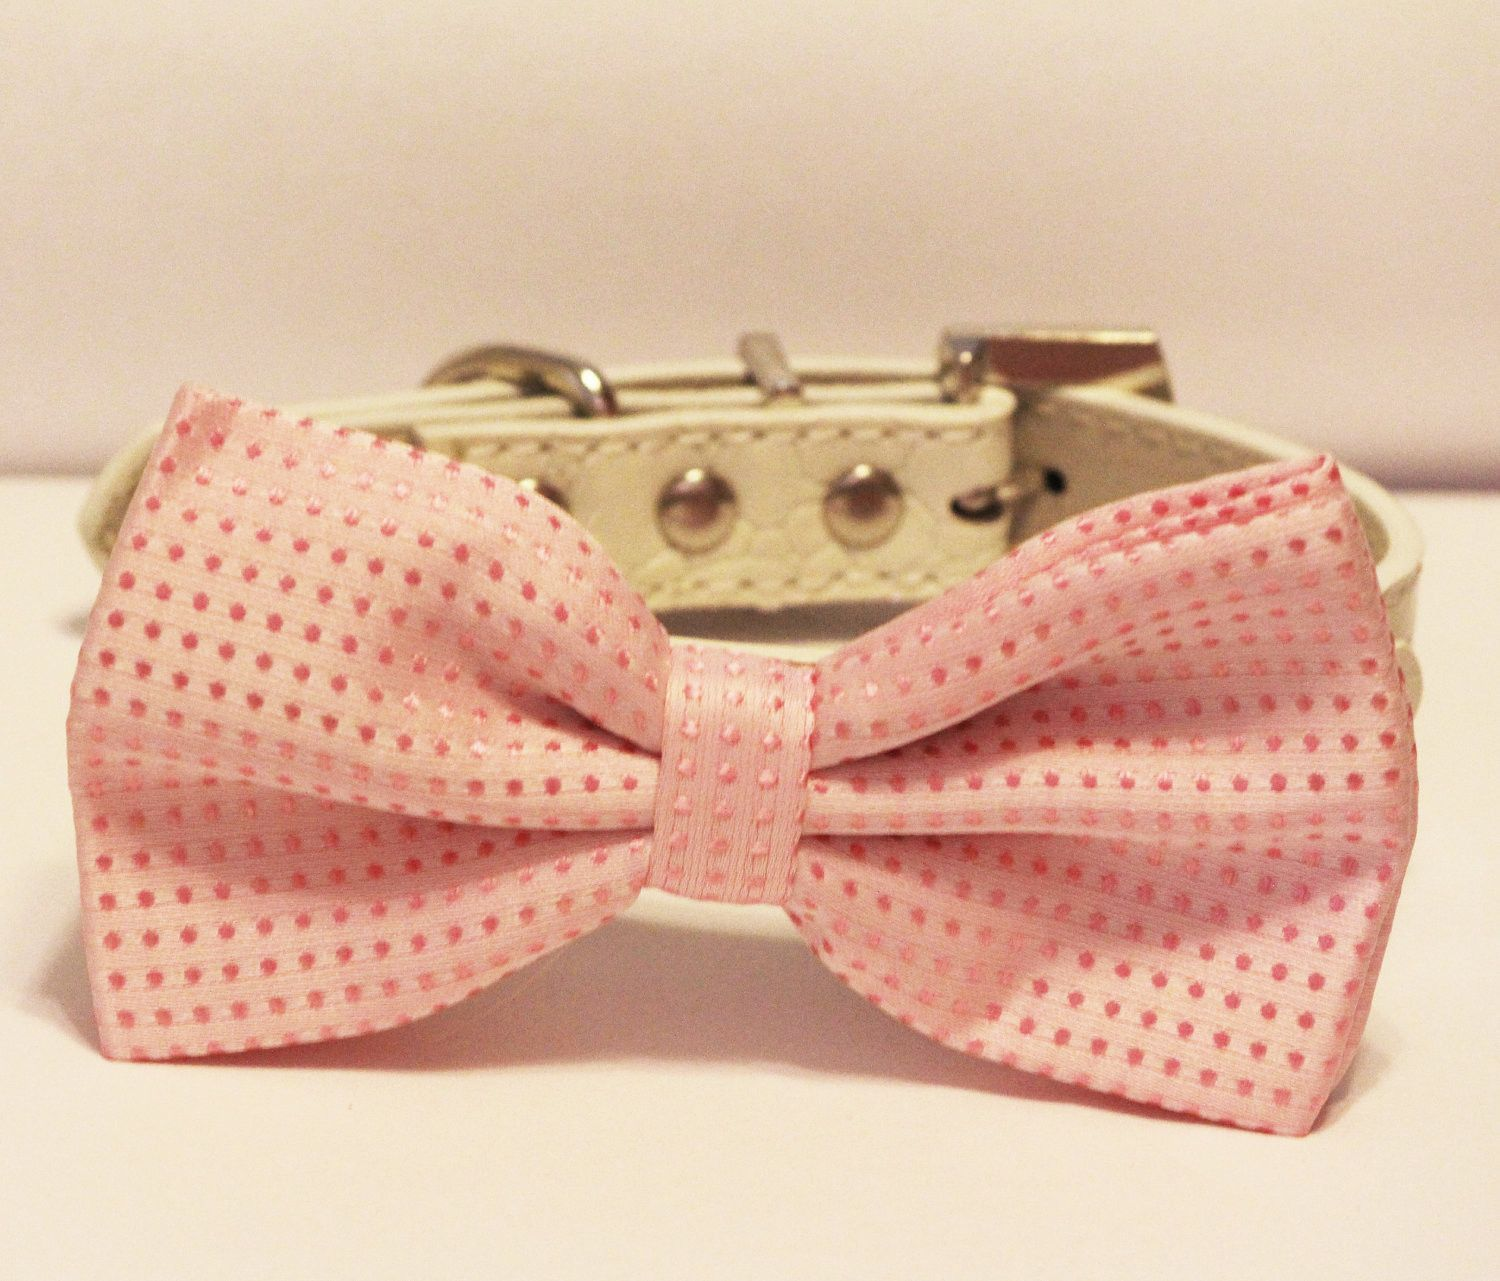 Simple Collar Bow Adorable Dog - 2569e0b44d988dd2ad3c91e96f0c2aff  Graphic_308557  .jpg